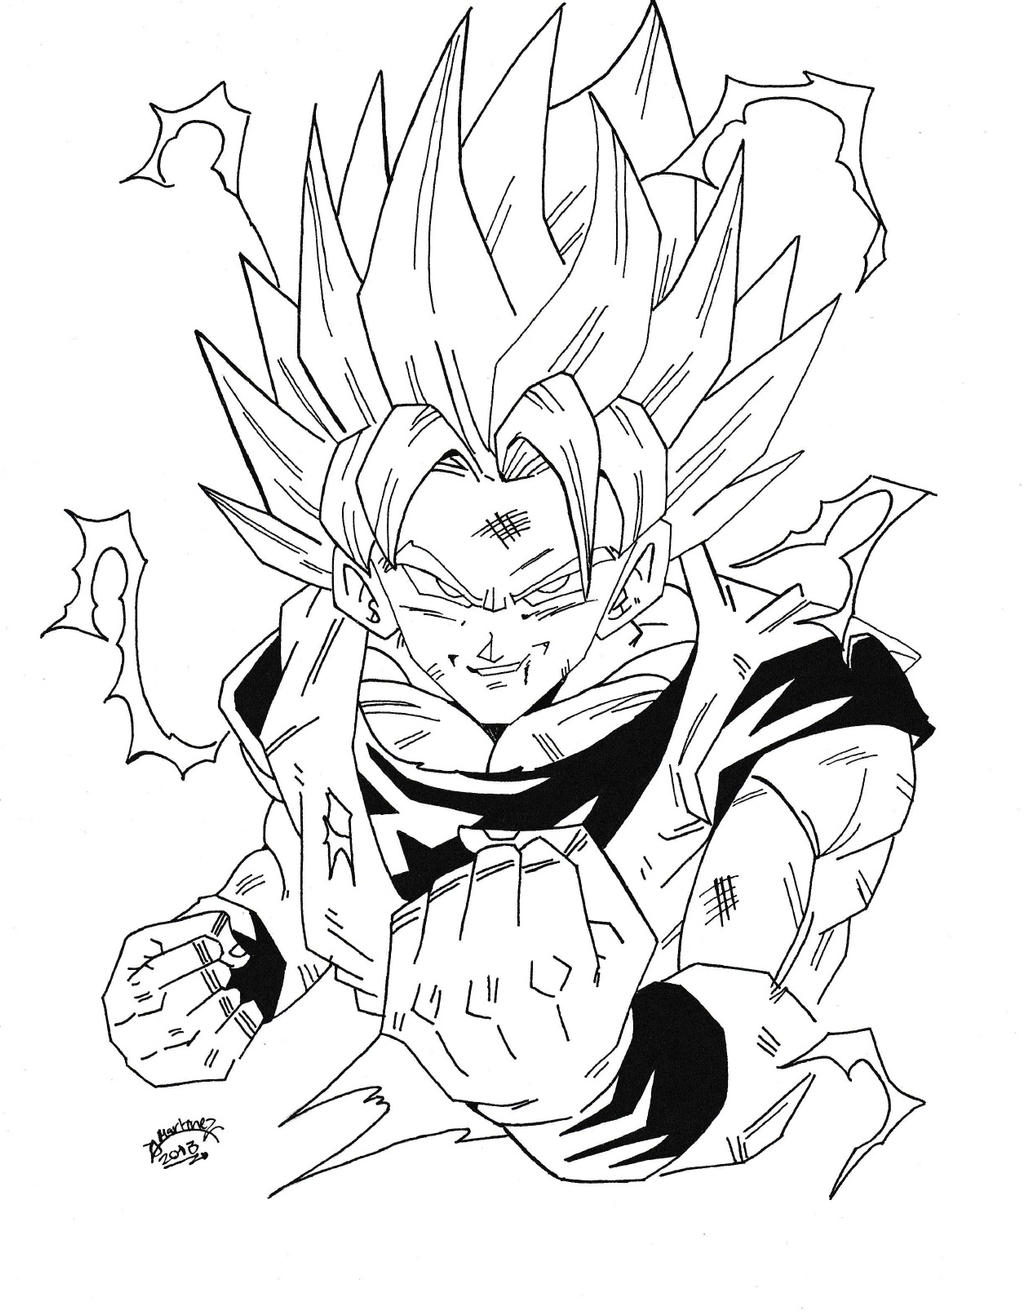 Dragonball z son goku super sayan 2 by triigun on deviantart for Dbz coloring pages goku